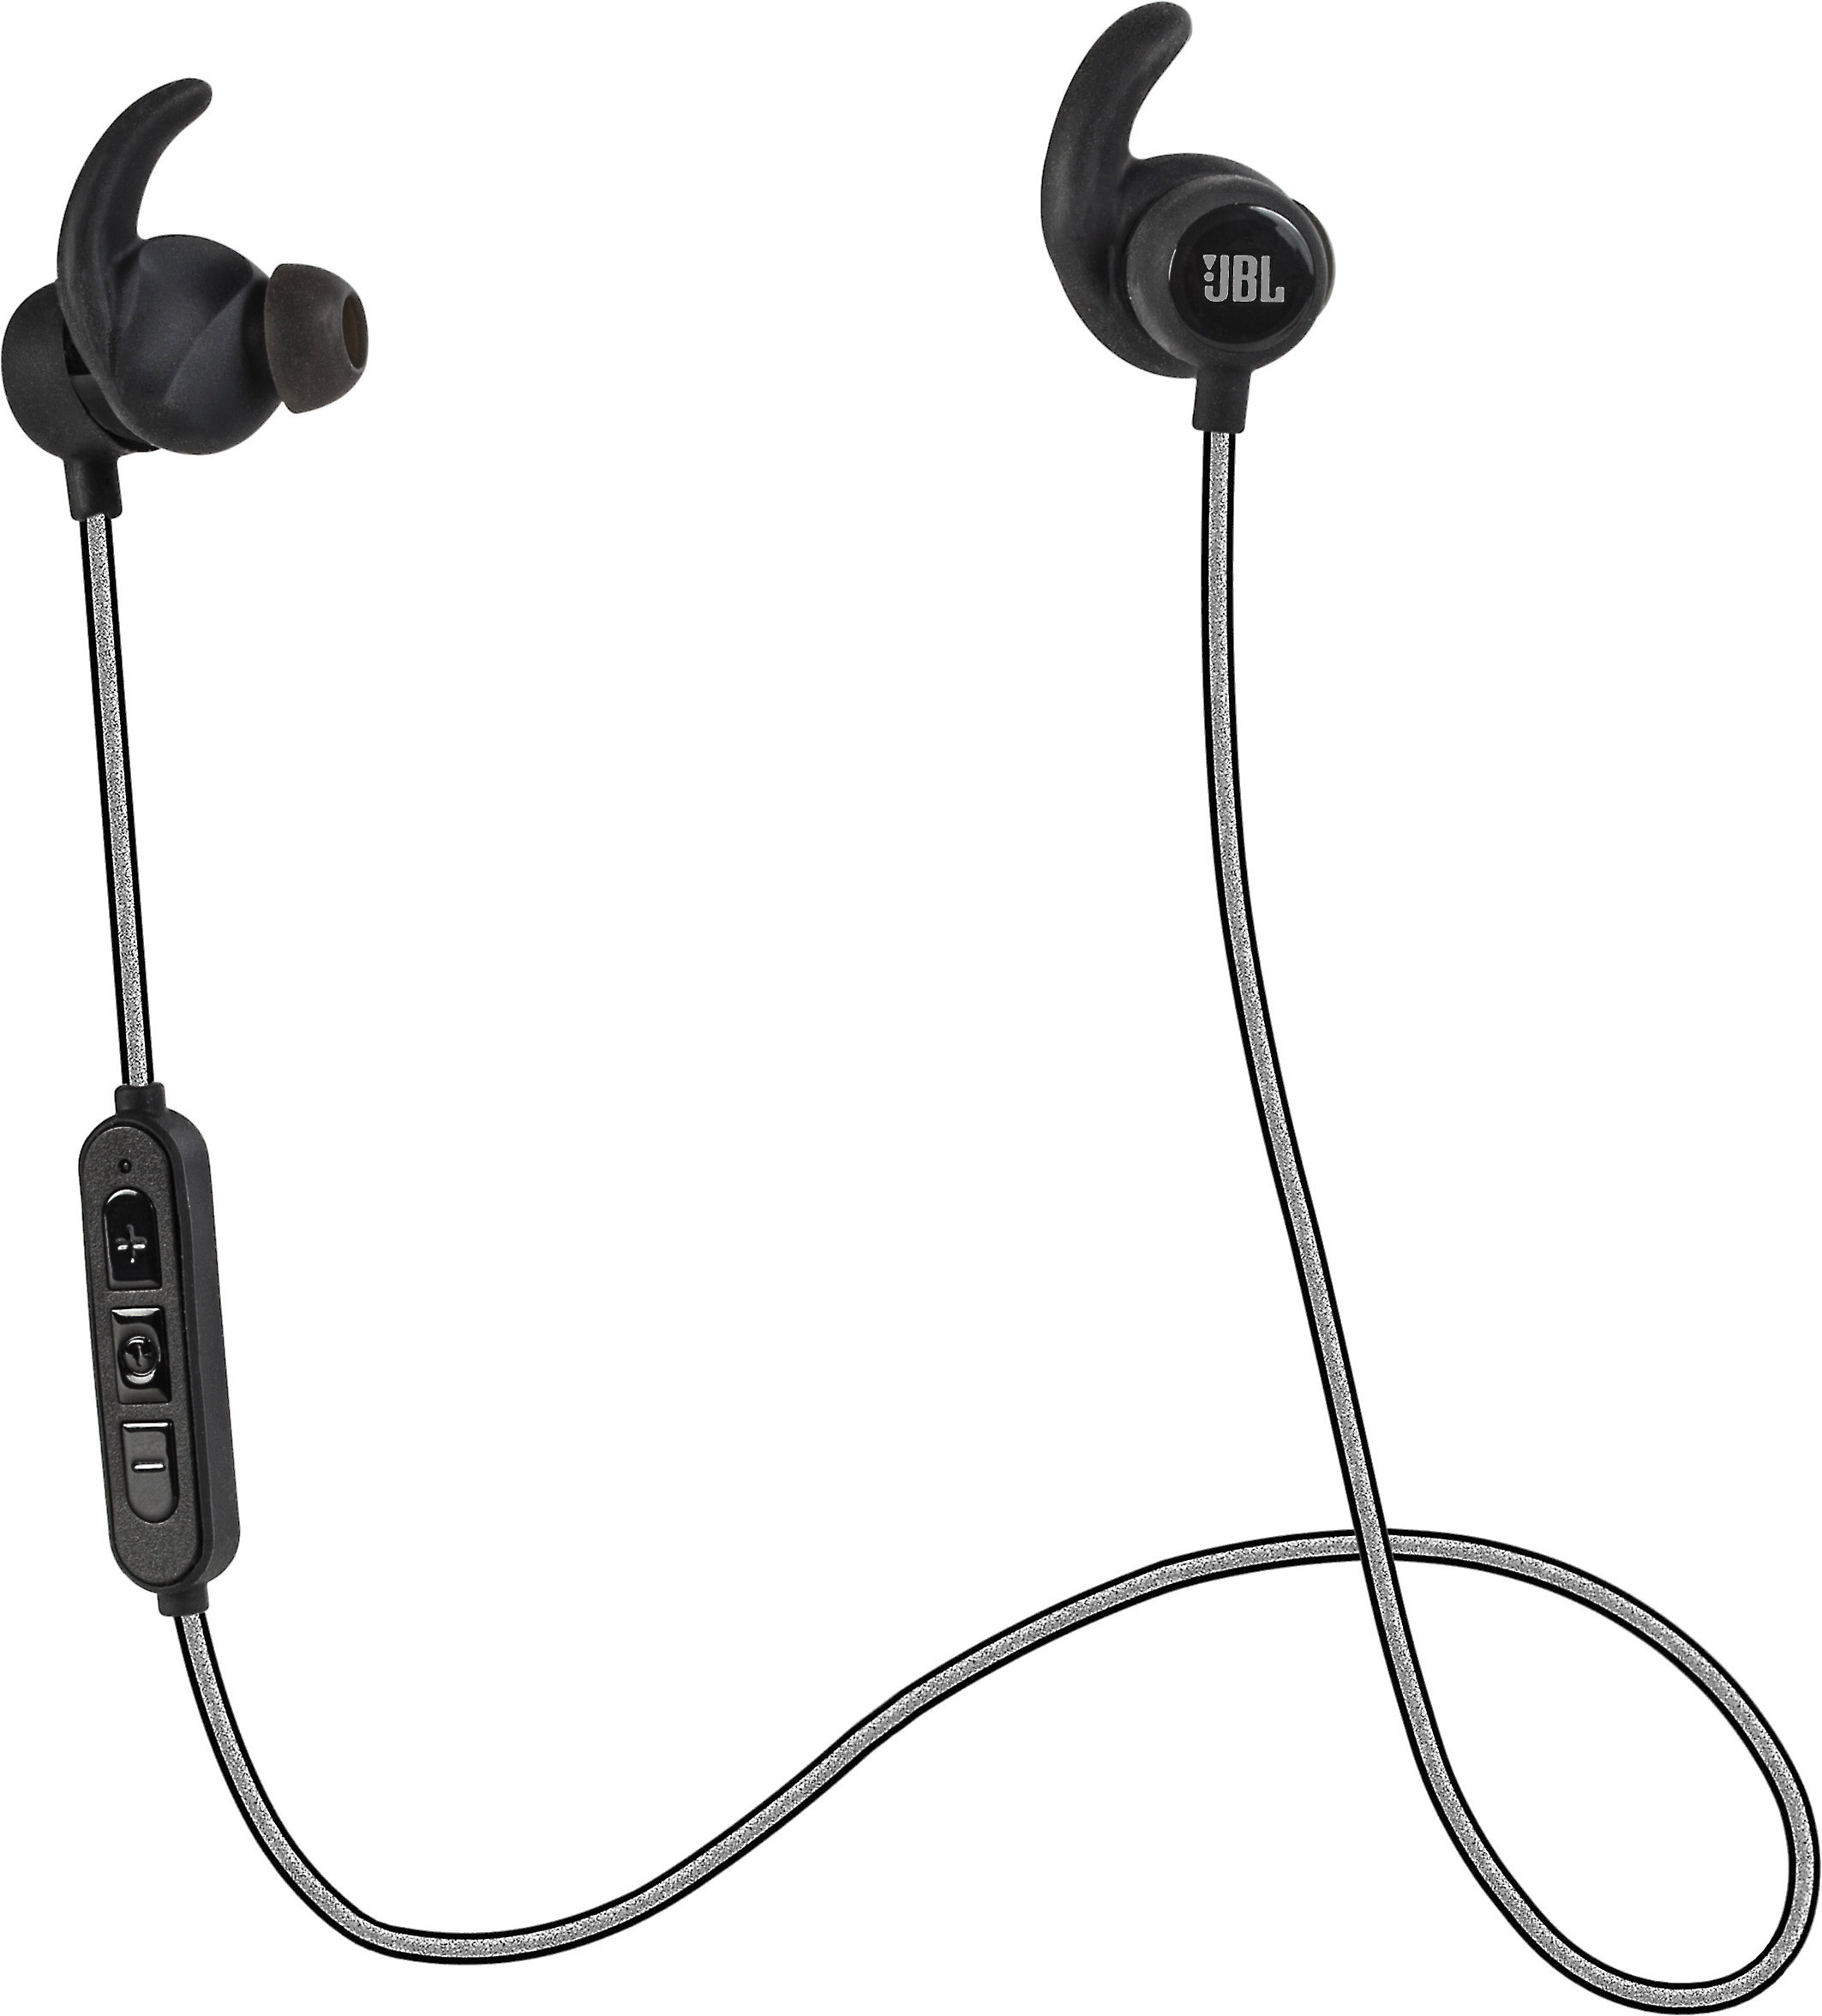 12 Black Ear tips Earbuds for JBL Free Reflect FIT BT,Reflect Response